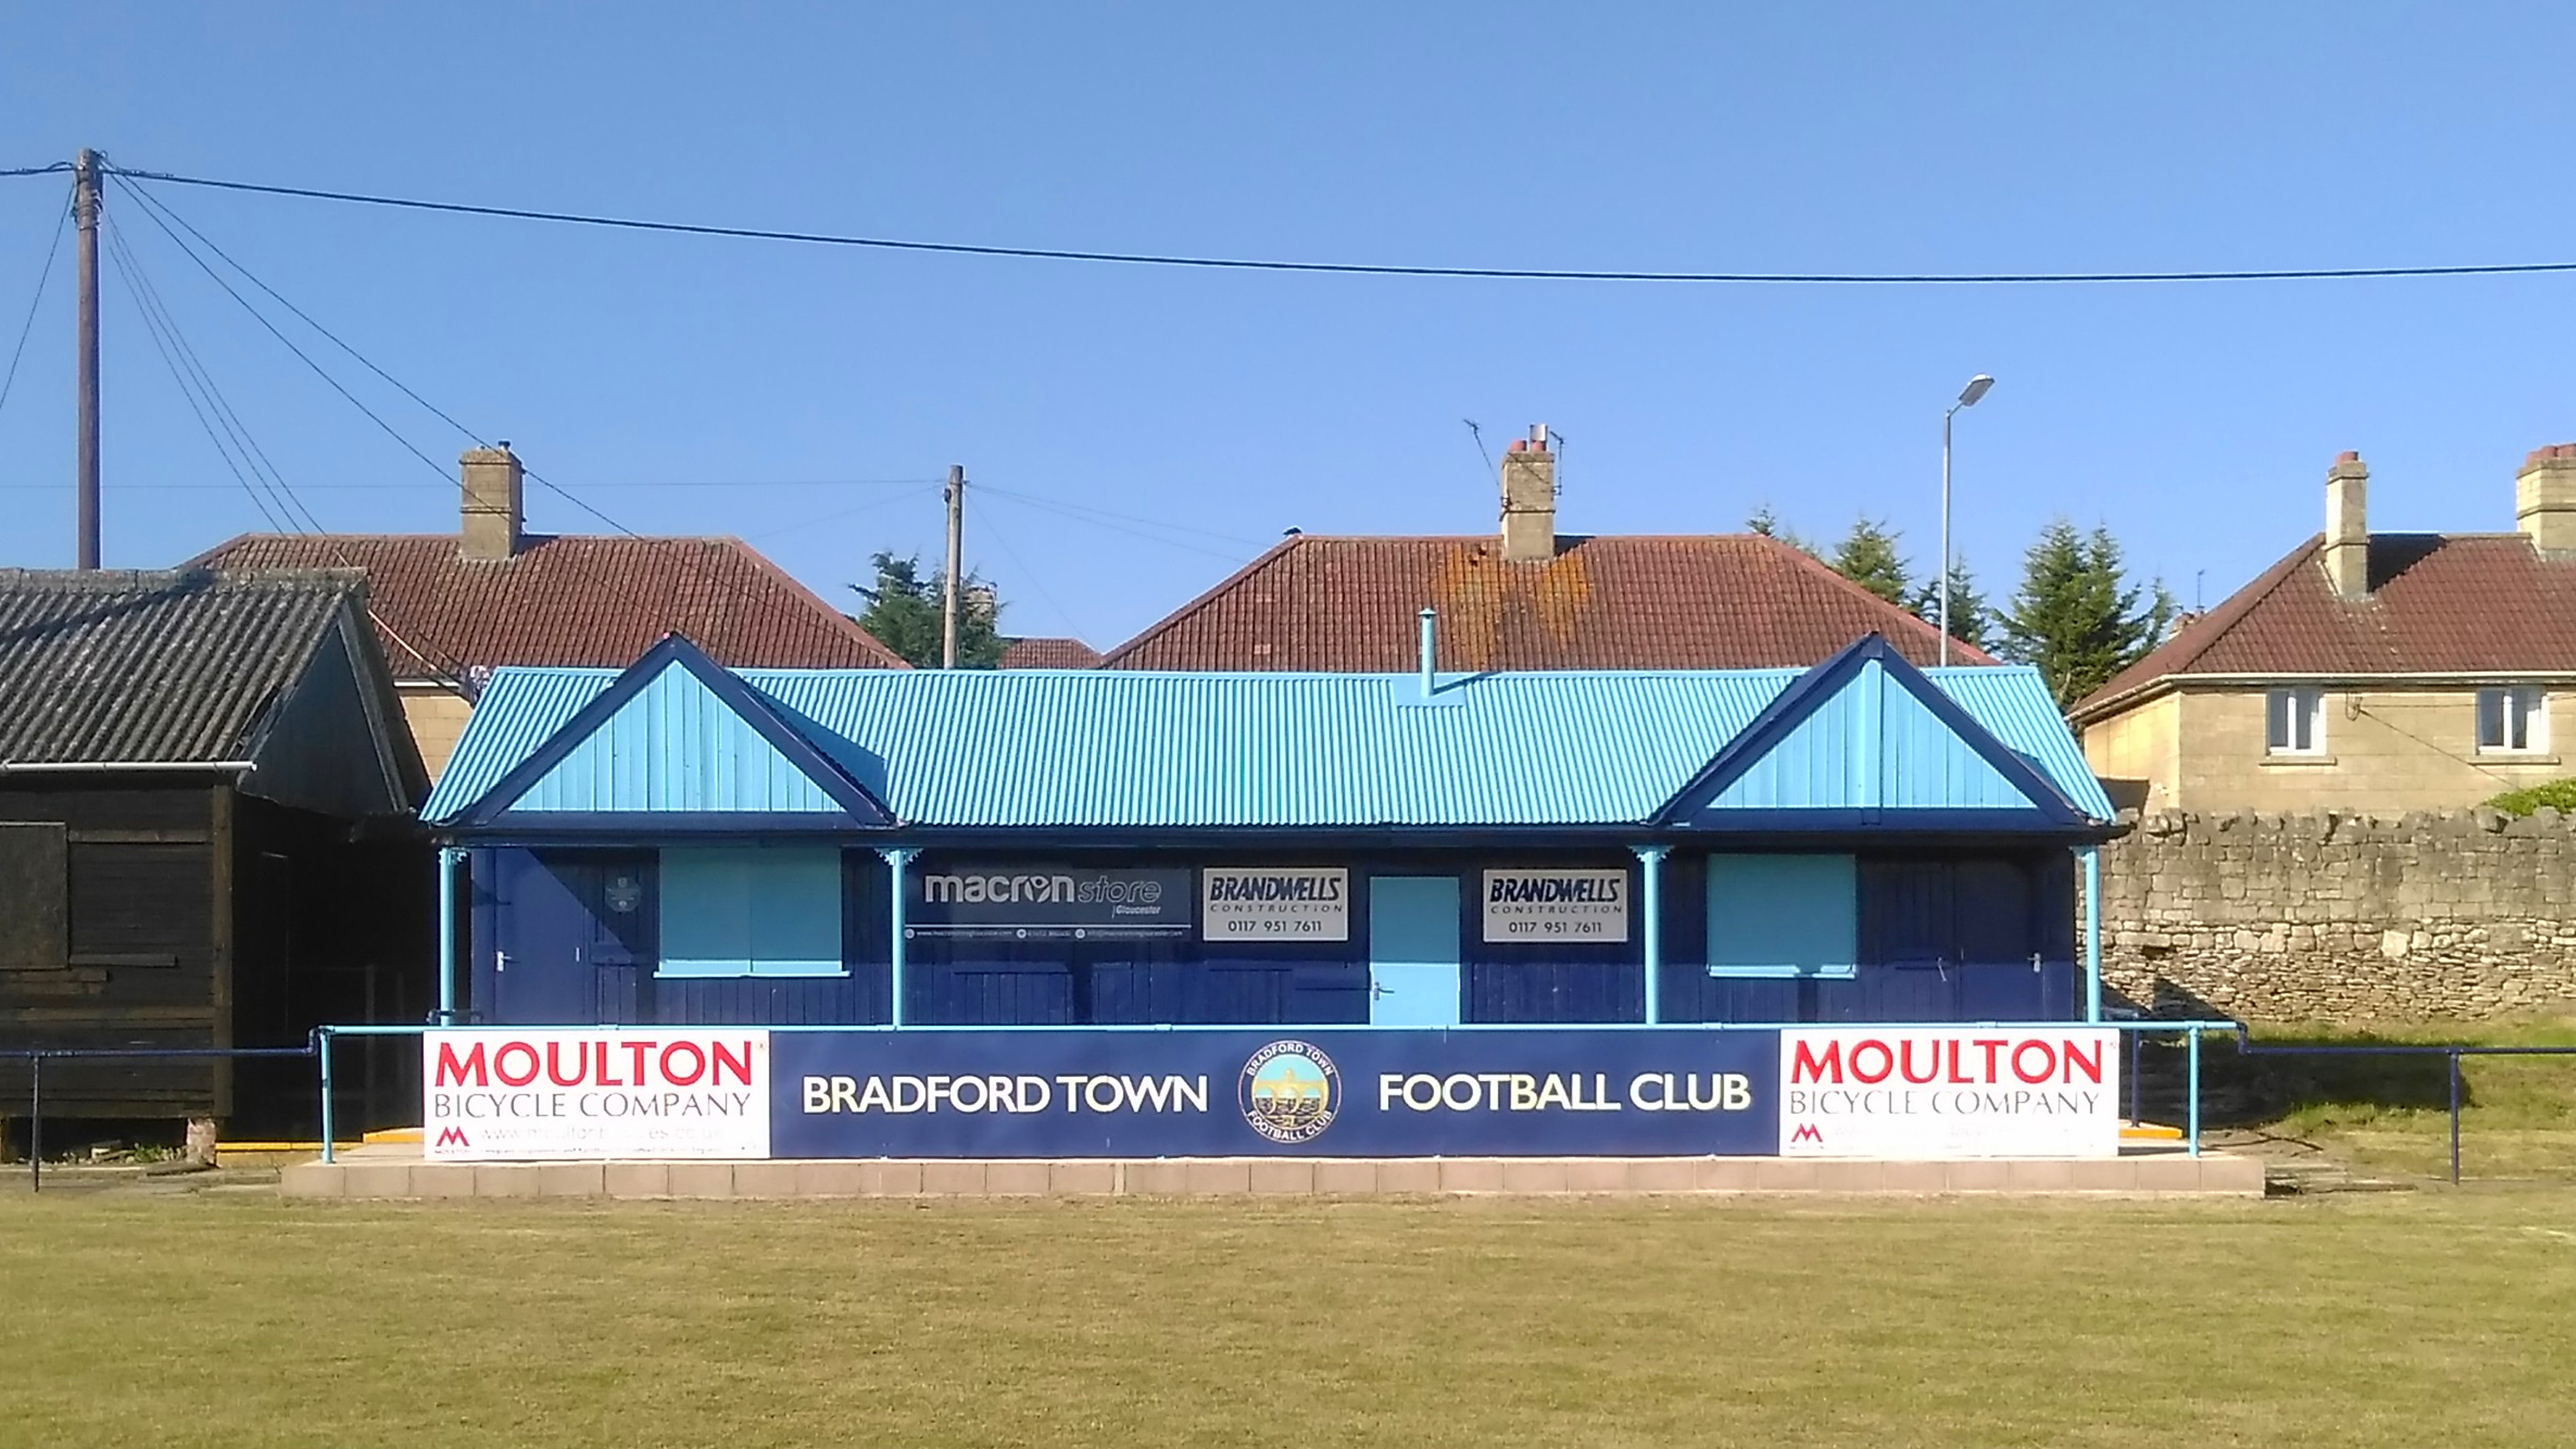 The official website of Bradford Town FC